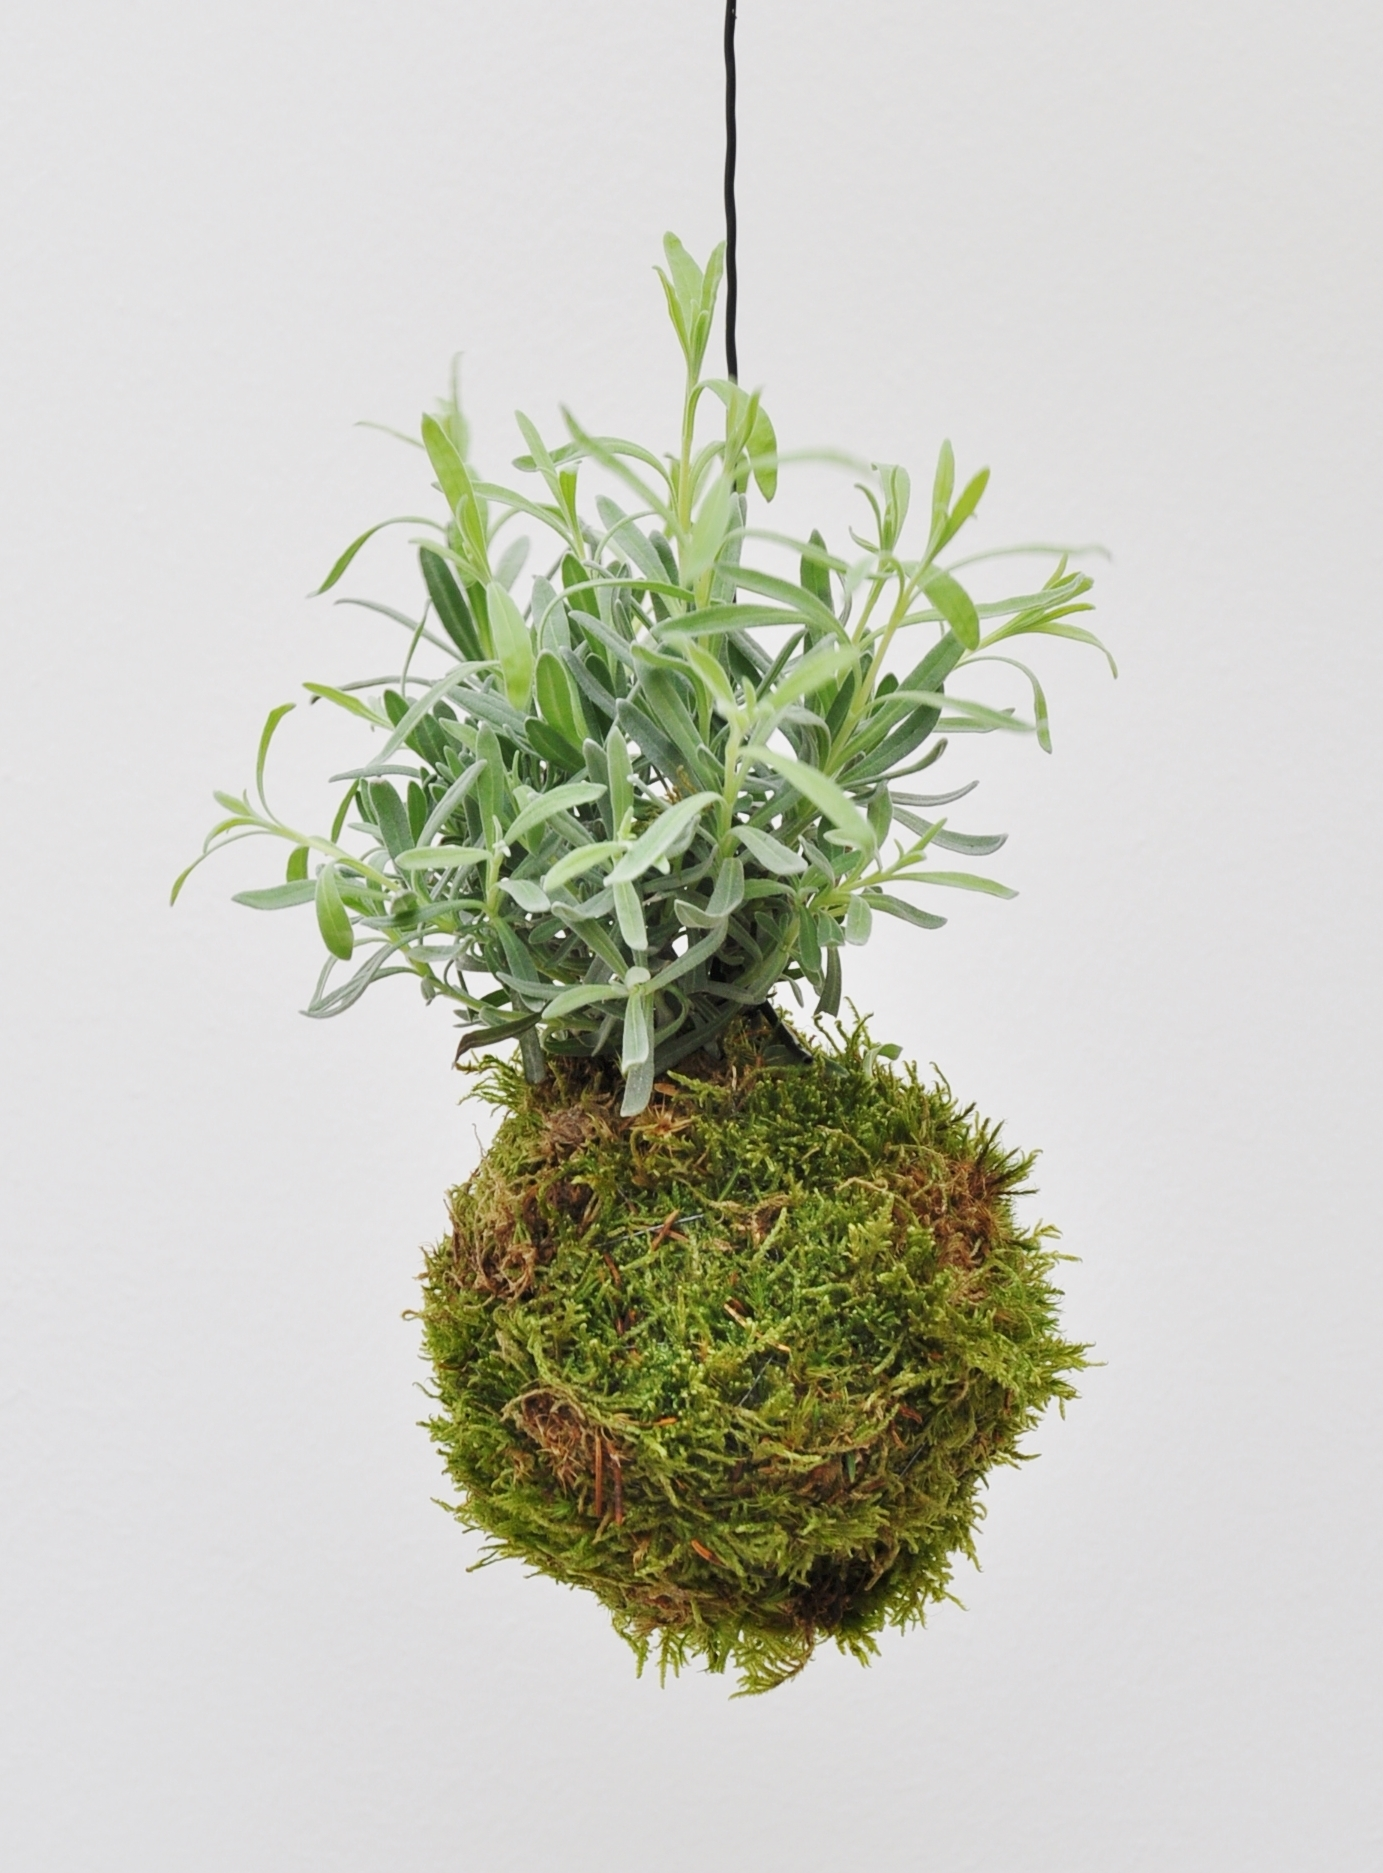 kokedama moosball lavendel kr uter pflanzen der palmenmann. Black Bedroom Furniture Sets. Home Design Ideas